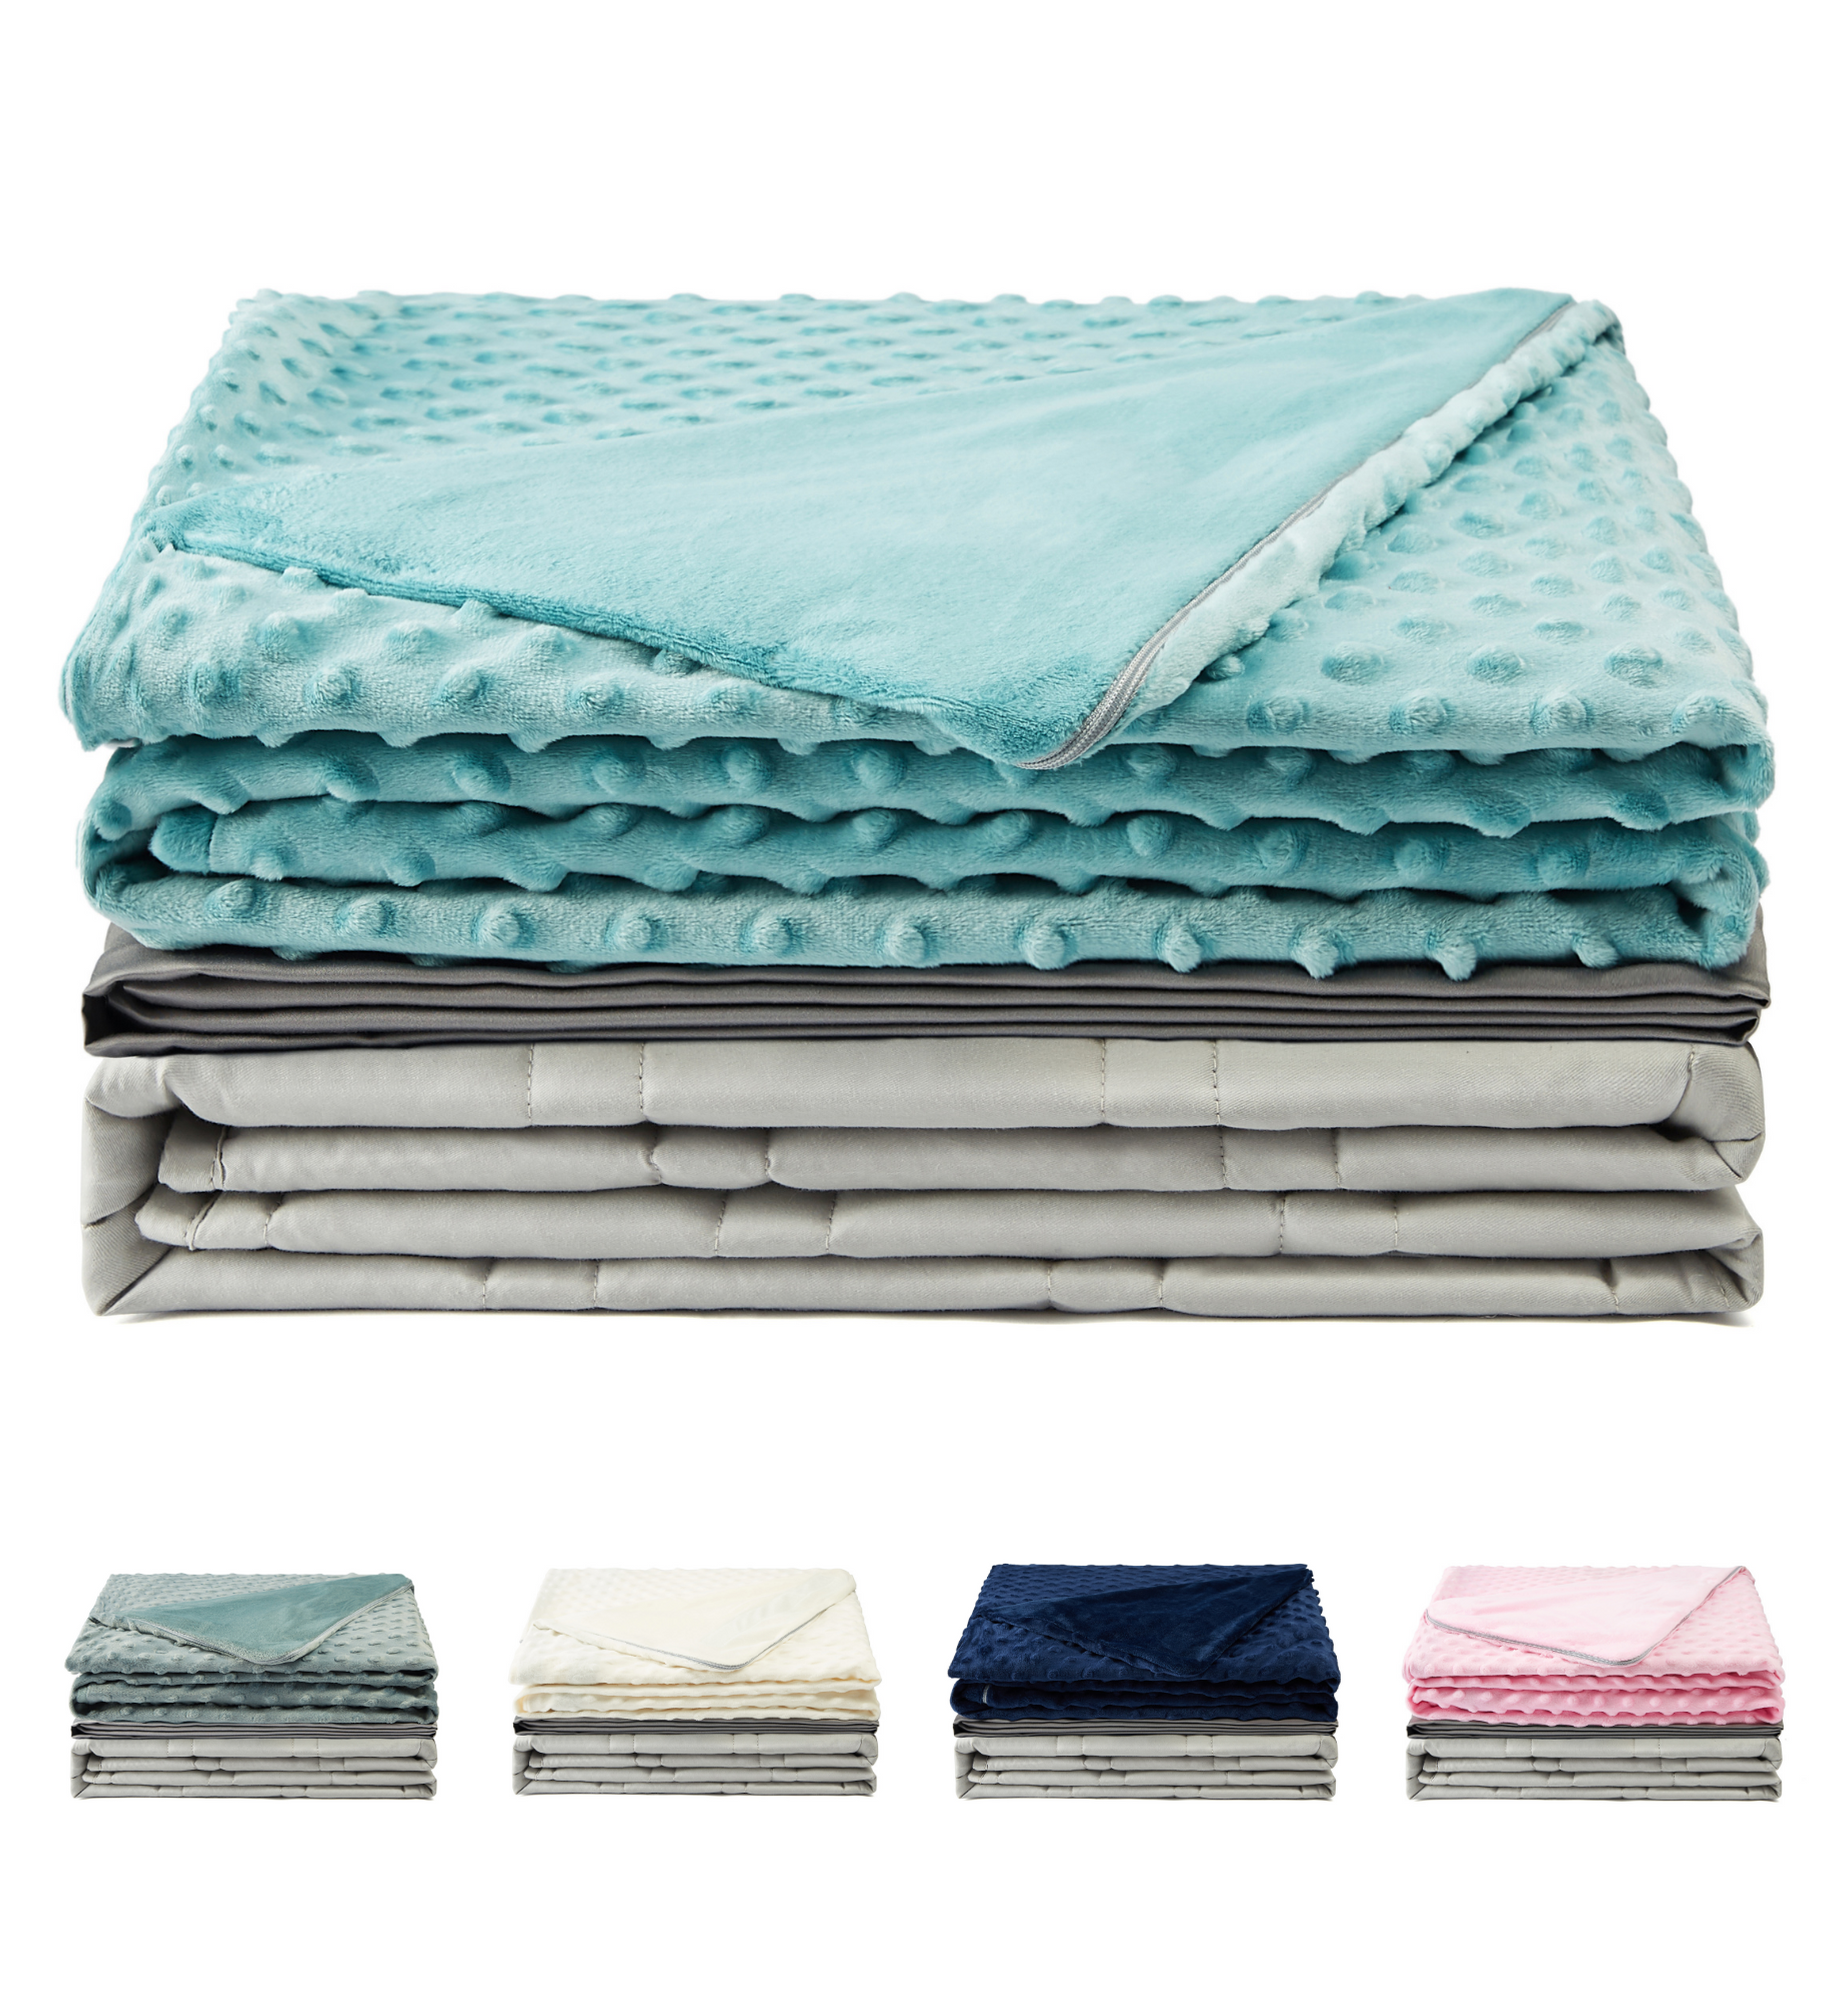 Premium Light Grey Weighted Blanket with Two Removable Covers (Aqua)